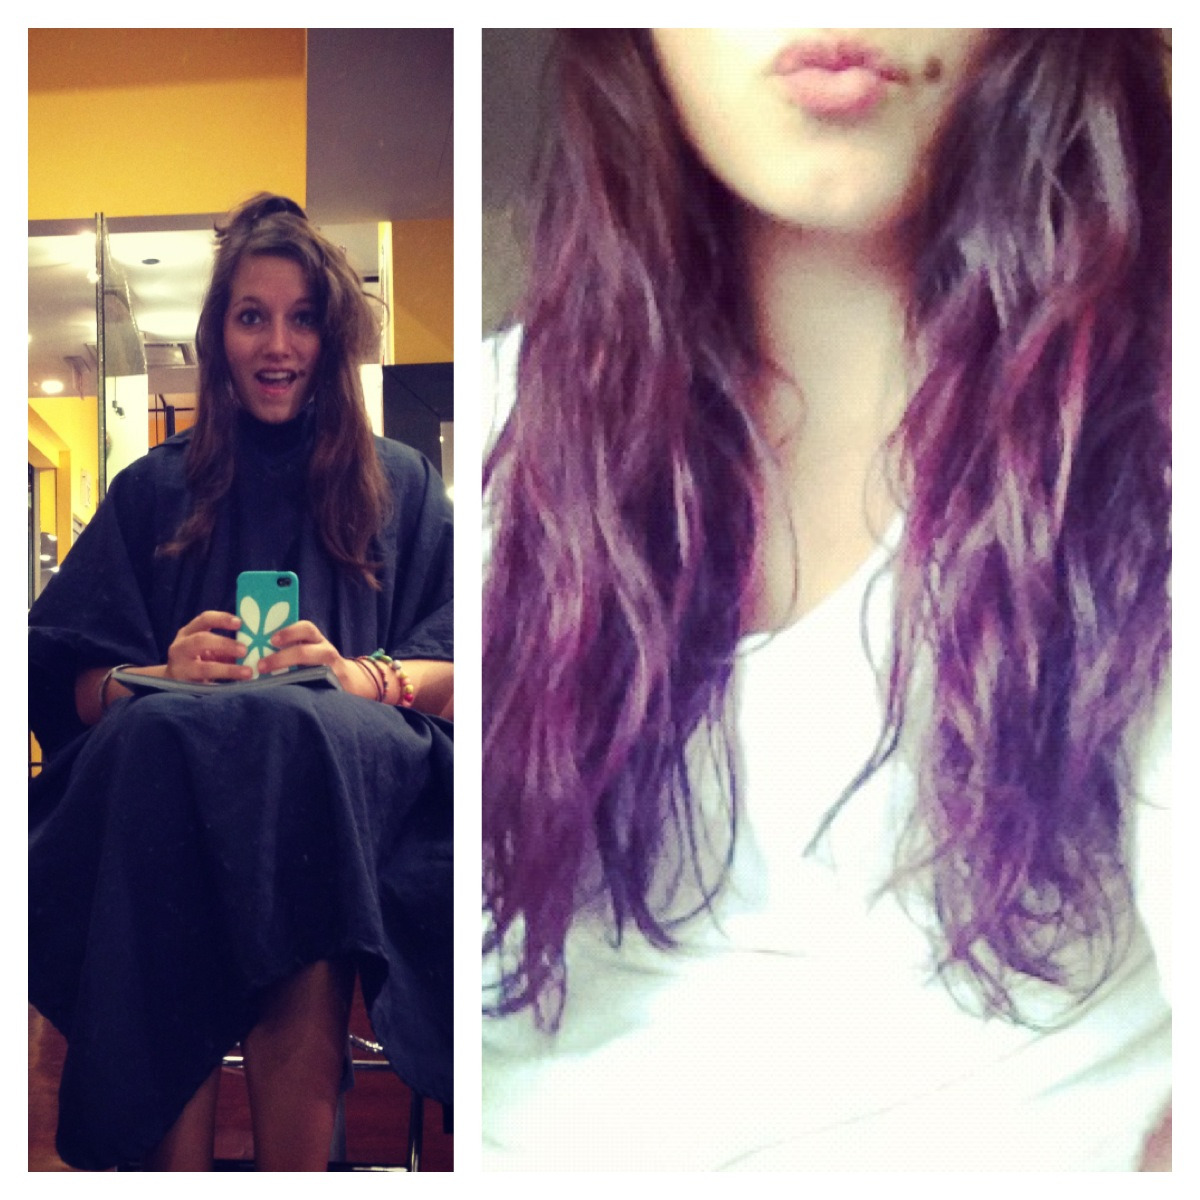 It's official…I finally jumped on the bandwagon and got me some ombre done! I was originally going to do a very vibrant purple dip dye, but since it was my first time every dying my hair, my stylist suggested doing the ombre because it will be a little bit more subtle. I like it a lot, in fact I love it! Purple and pink are my favorite colors, so you are able to see my hair start from brown to pink to purple, and I think it looks great with my natural shade of hair. The process was pretty long, but pretty worth it! I had been using a my favorite shampoo, BIG, but it contains sea salt which can strip the hair of its color, so instead I purchased Aveda's color protecting shampoo and conditioner, as well as the Moroccan Oil curl cream—it smells delish!  I HIGHLY recommend trying it! My stylist had told me that the beauty industry just came out with a ton of new colors, so next time I go, I am able to get colors like mint, or coral!